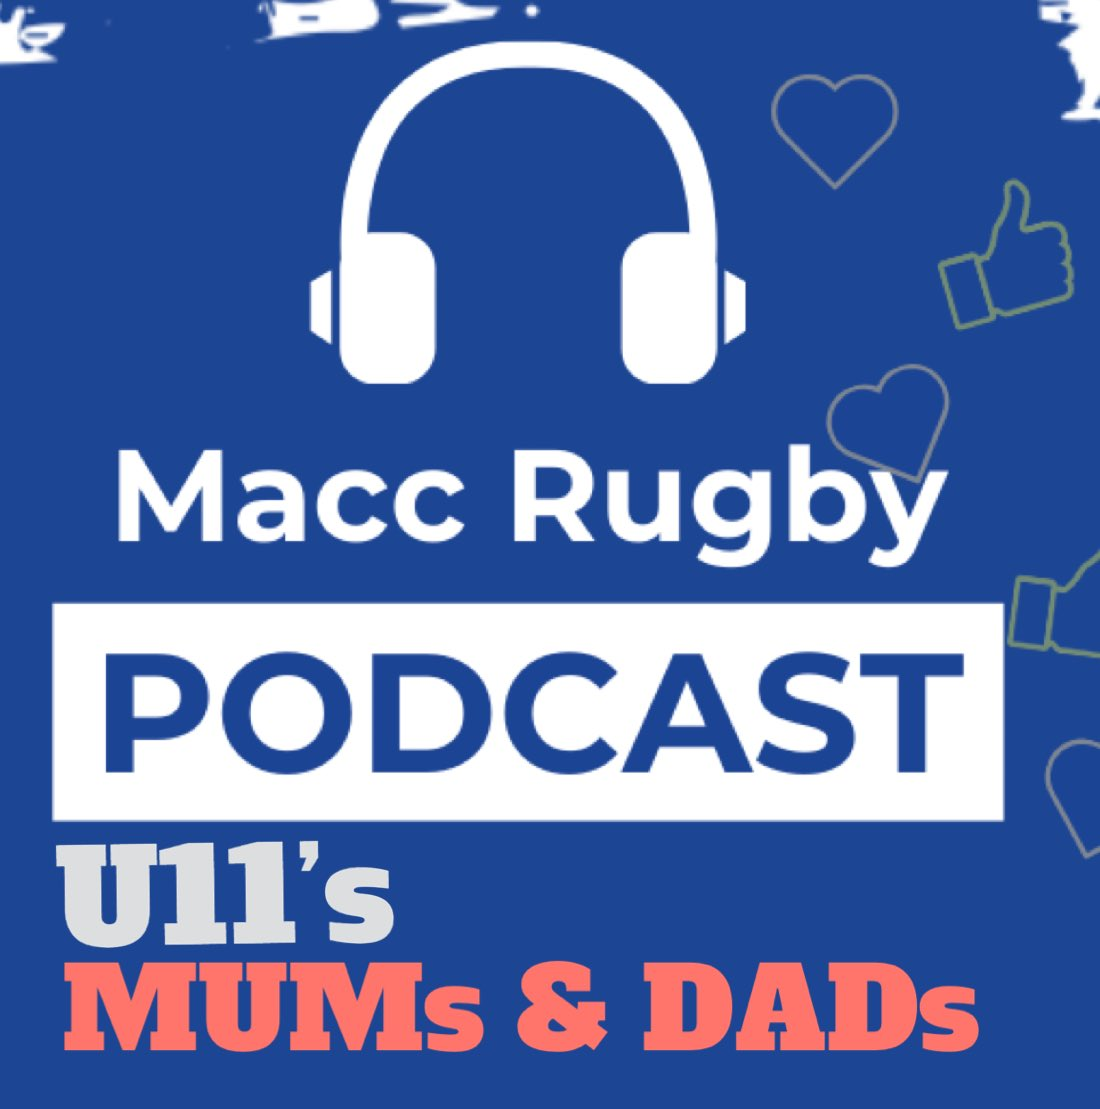 test Twitter Media - If you haven't listened to the latest episode of the pod 'The History Boys' with David Wilkinson and Bob Jenner make sure you check it where you subscribe. New episode out later this week with the Macc U11's Parents!!! https://t.co/hebyFmFwp3